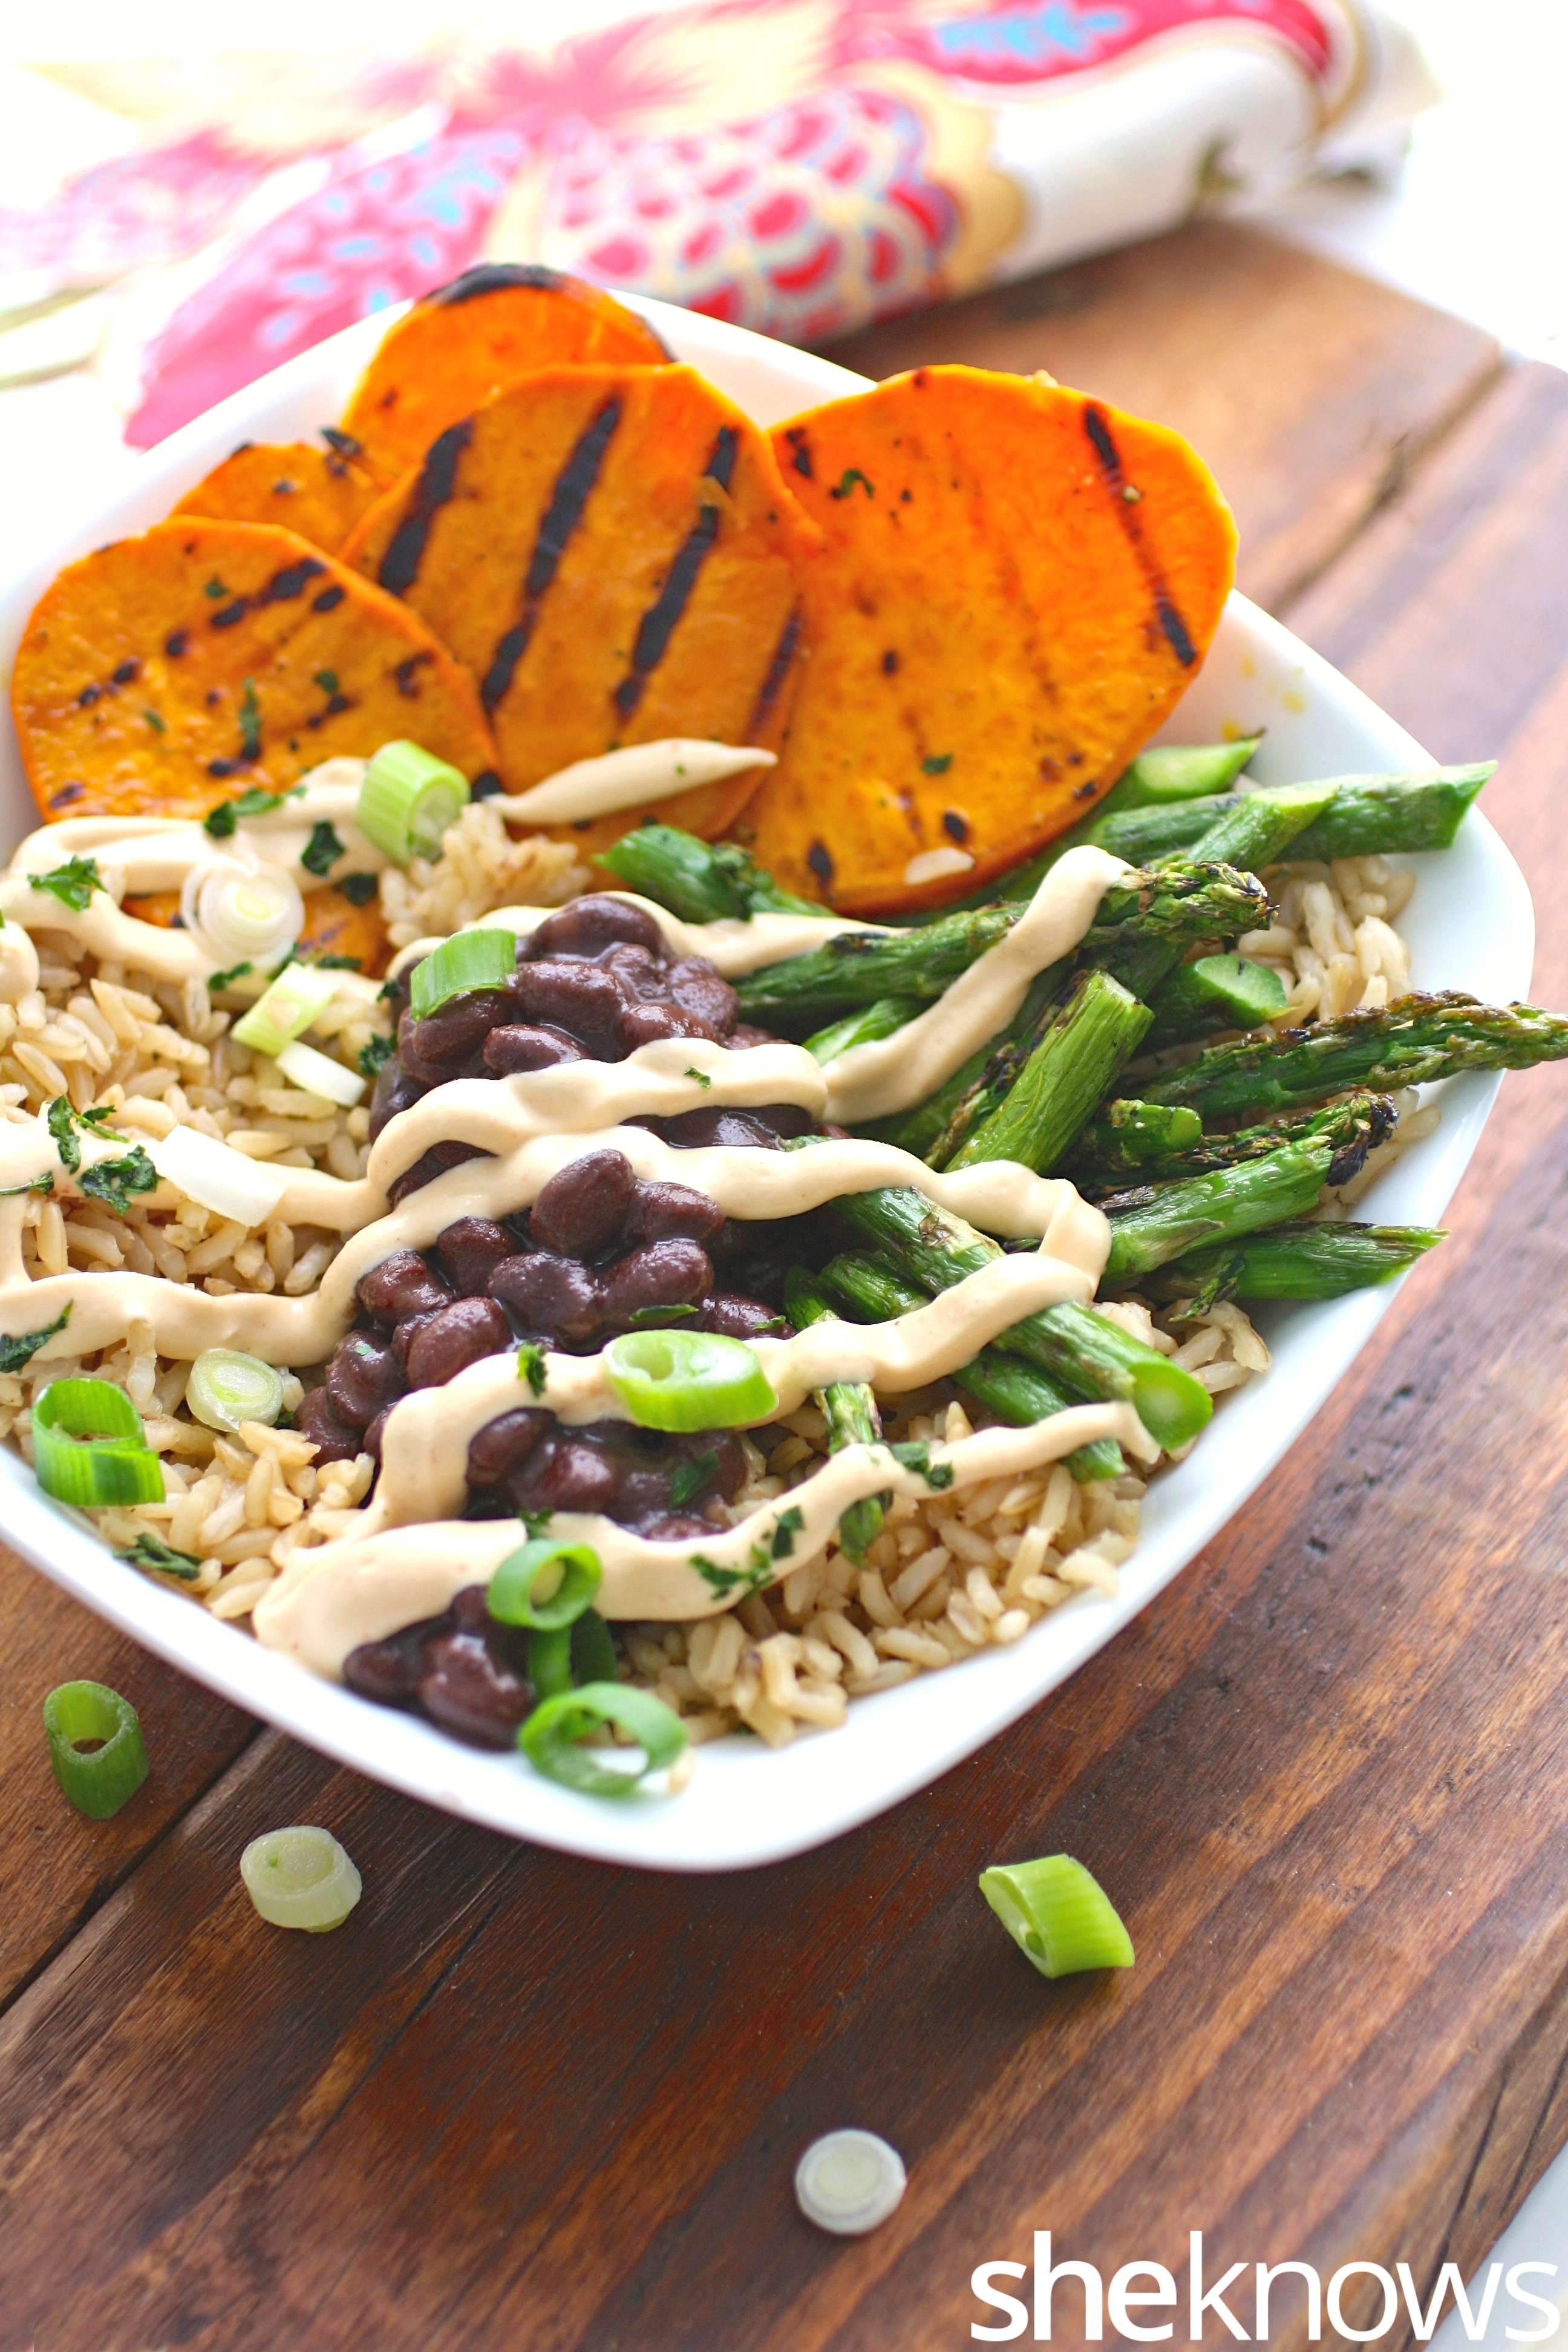 Brown-rice-bowls-grilled-sweet-potato-asparagus-cashew-cream